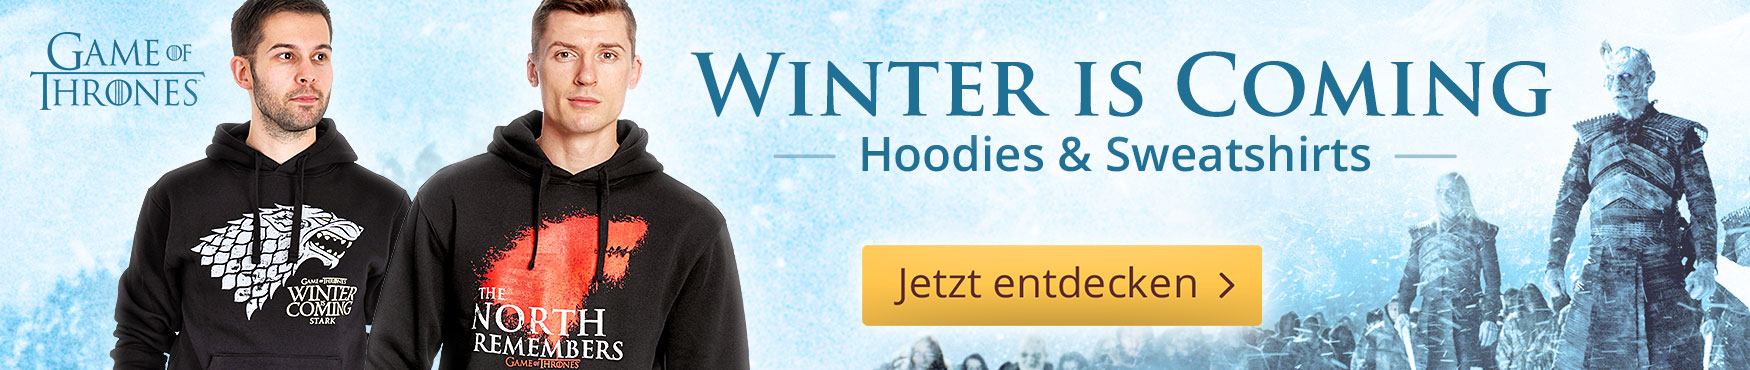 Winter is Coming: Game of Thrones - Hoodies & Sweatshirts